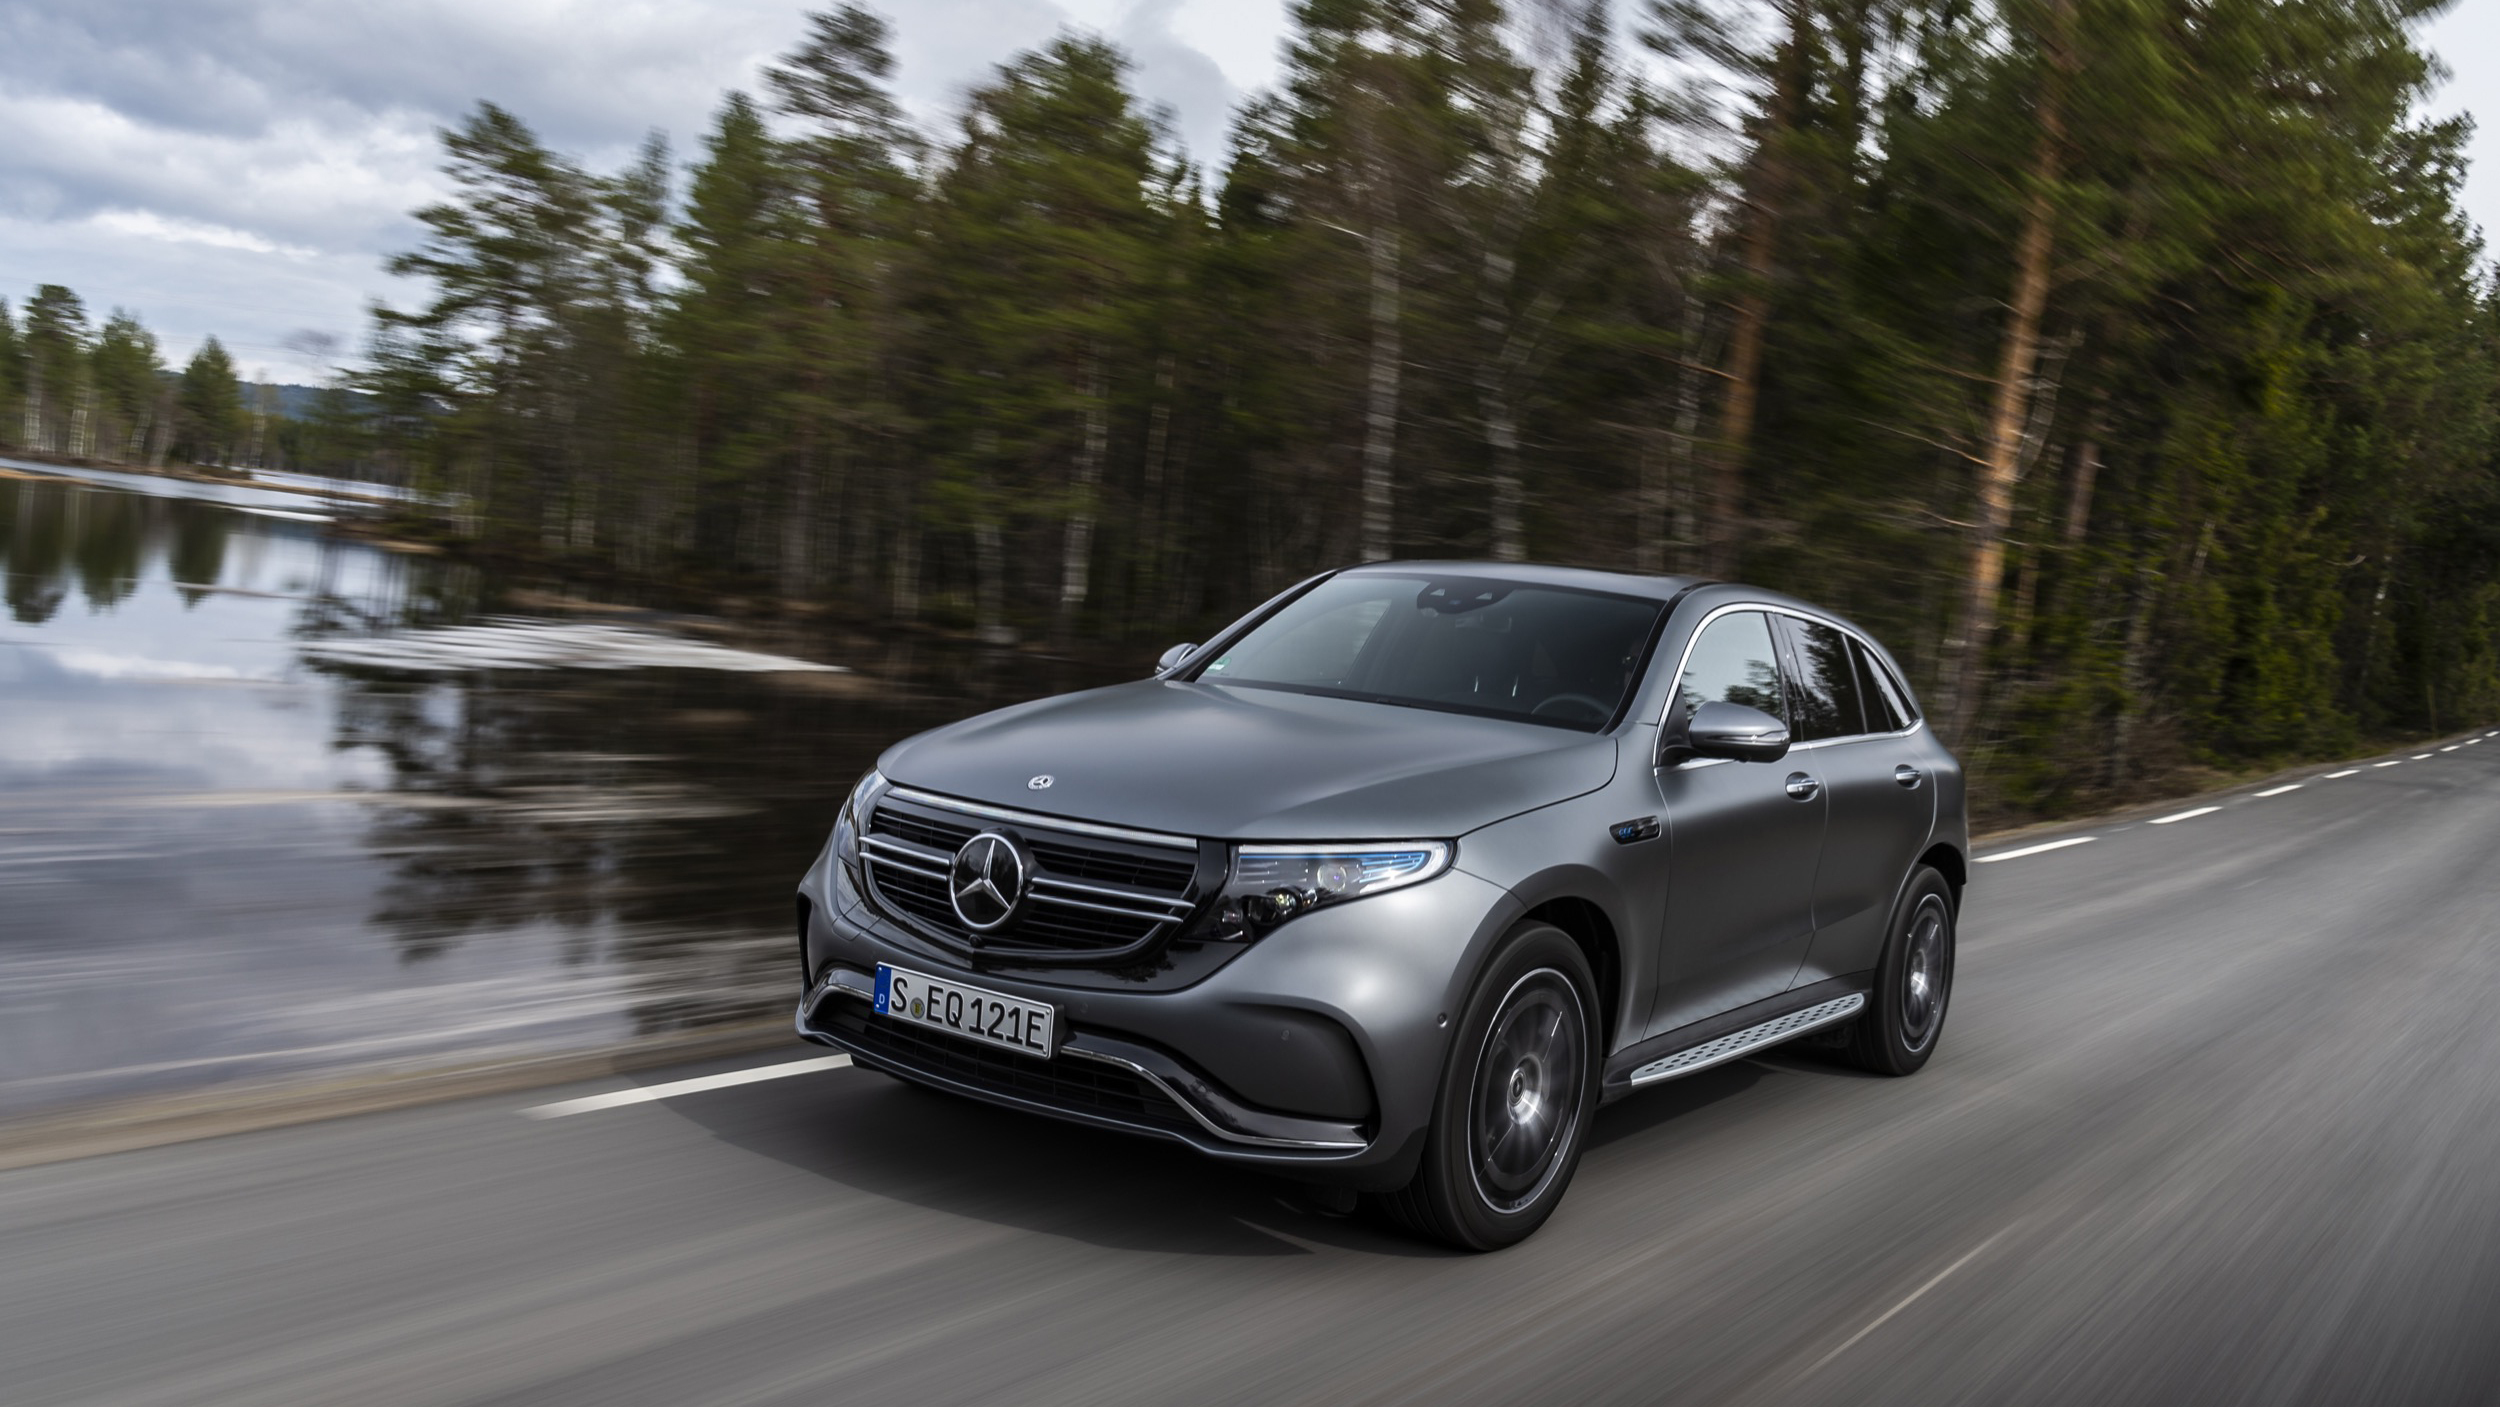 2020 Mercedes-Benz EQC First Drive Review | What's new ...